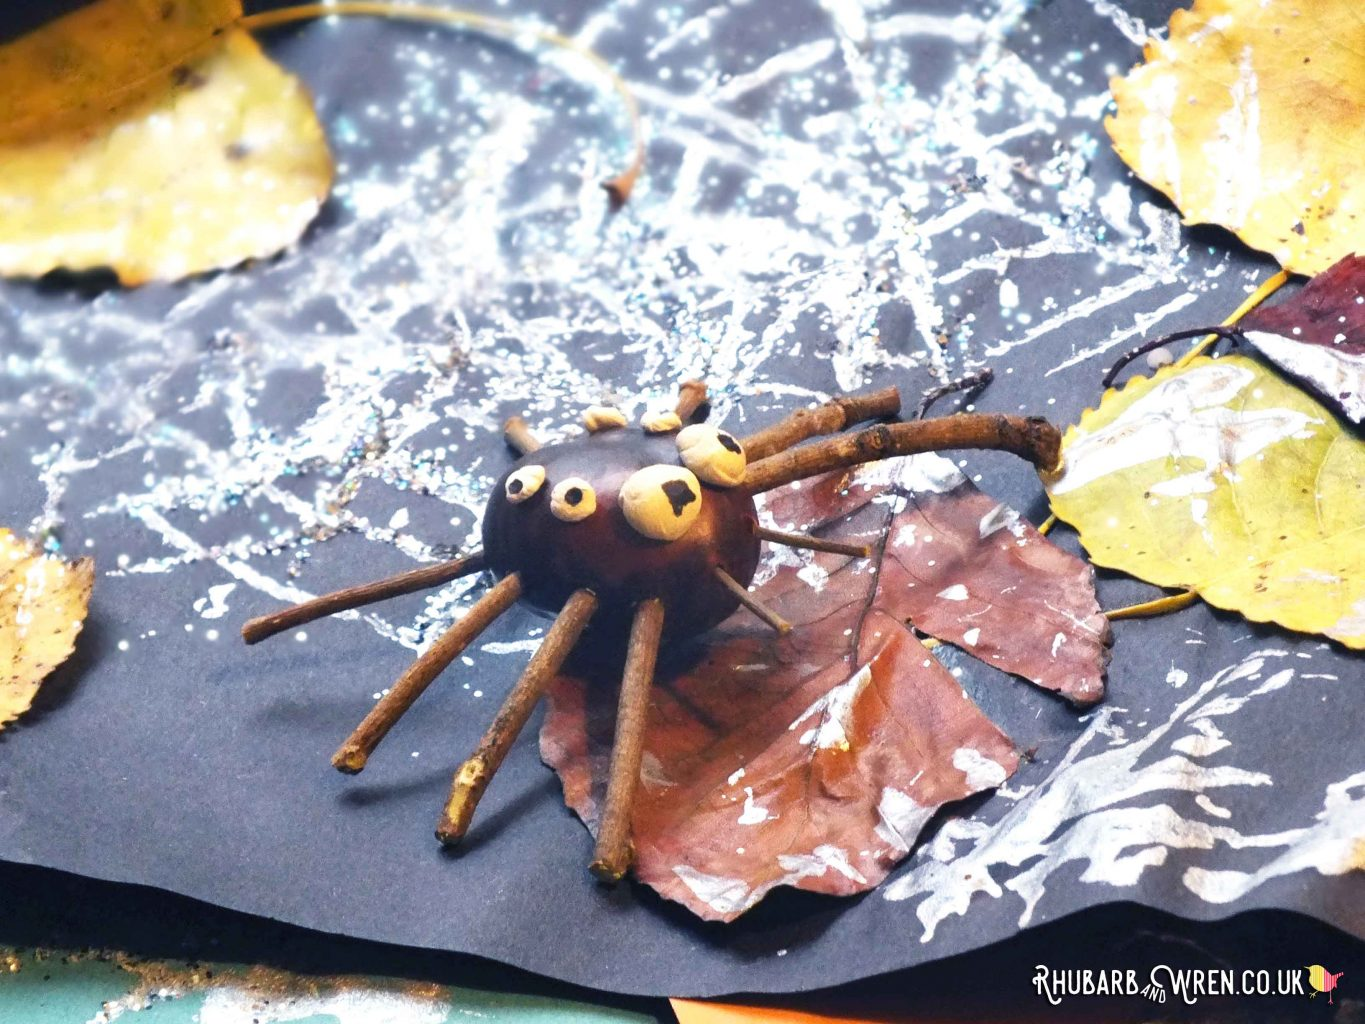 A spider made from conkers and twigs